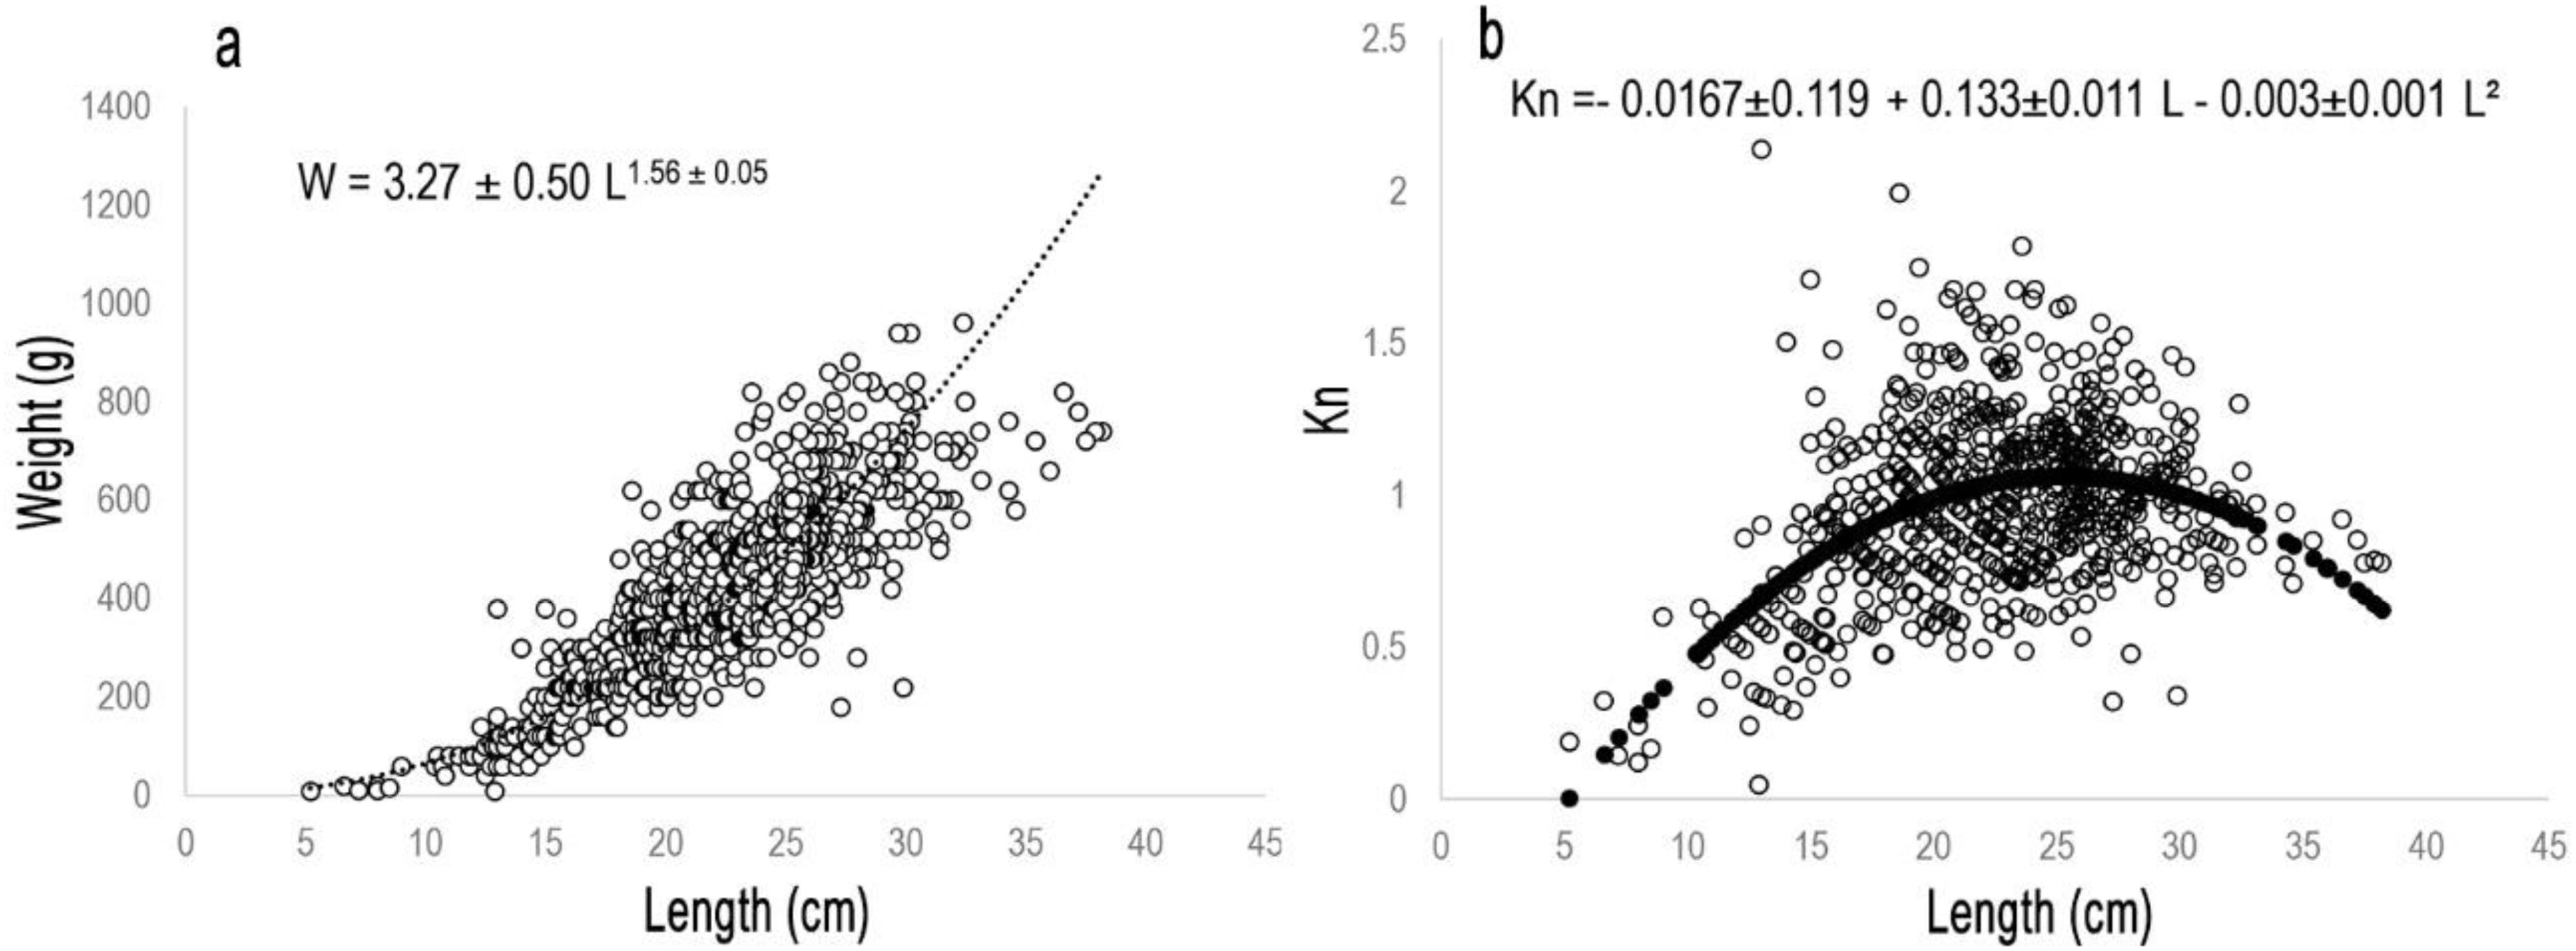 figure 2 a) length-weight relationship and b) relative condition index of  the brown sea cucumber isostichopus fuscus in the study area